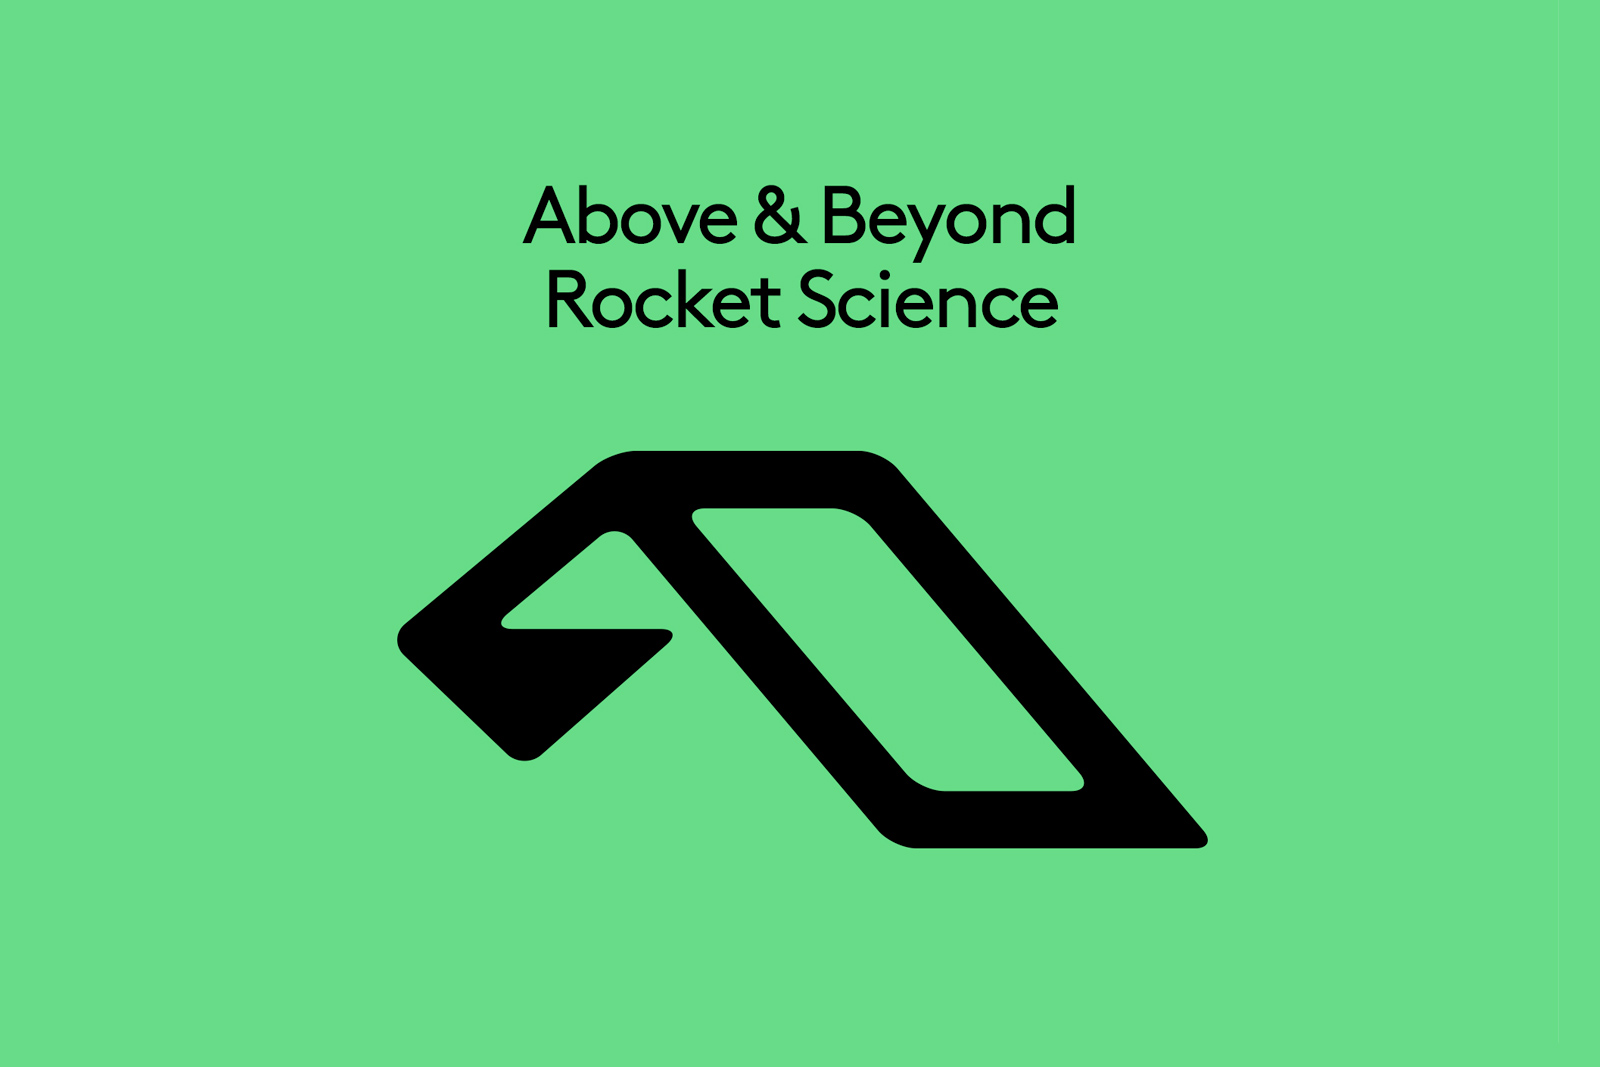 above-and-beyond-rocket-science-oz-edm